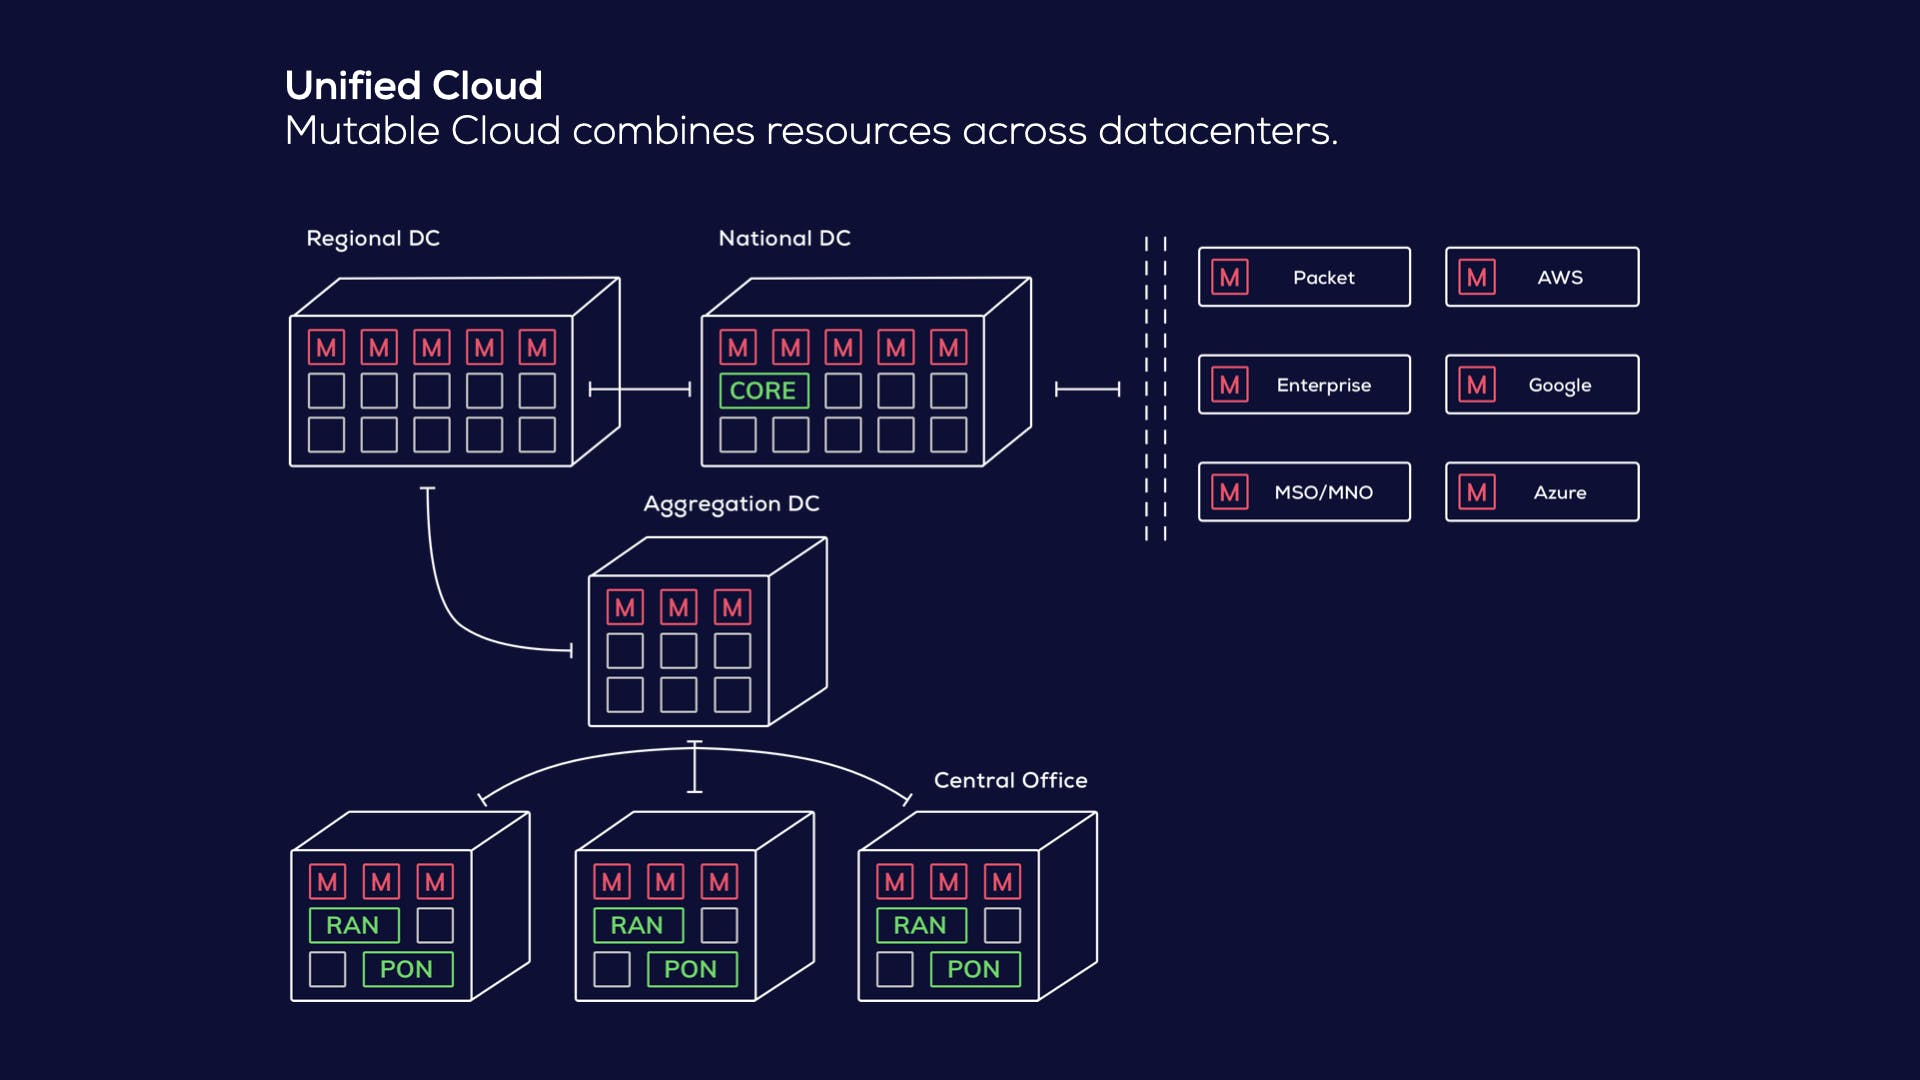 Unified Cloud - Mutable Cloud combines resources across datacenters.